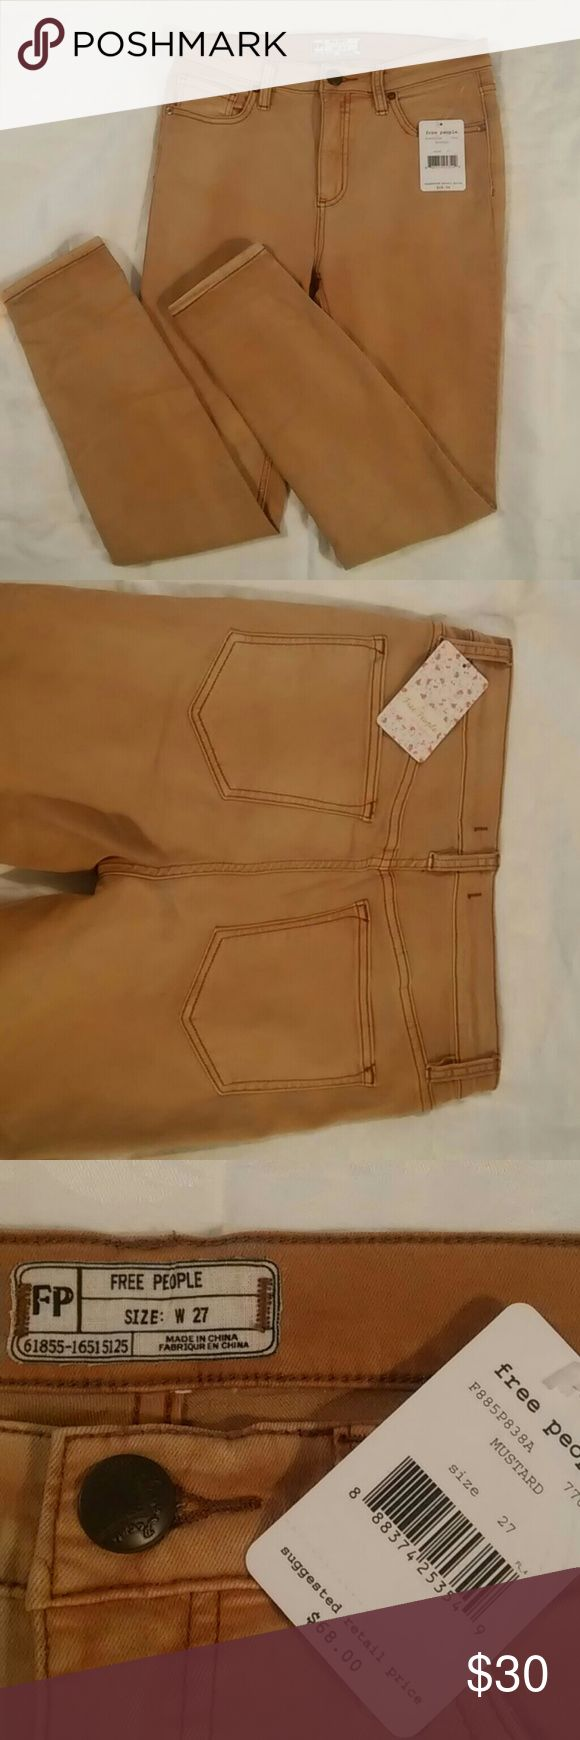 "NWT Free People Mustard Jeans 5 pockets jeans with stretch.  4.5"" zipper, 25.5"" inseam, and ~5"" width leg opening. Free People Jeans Skinny"